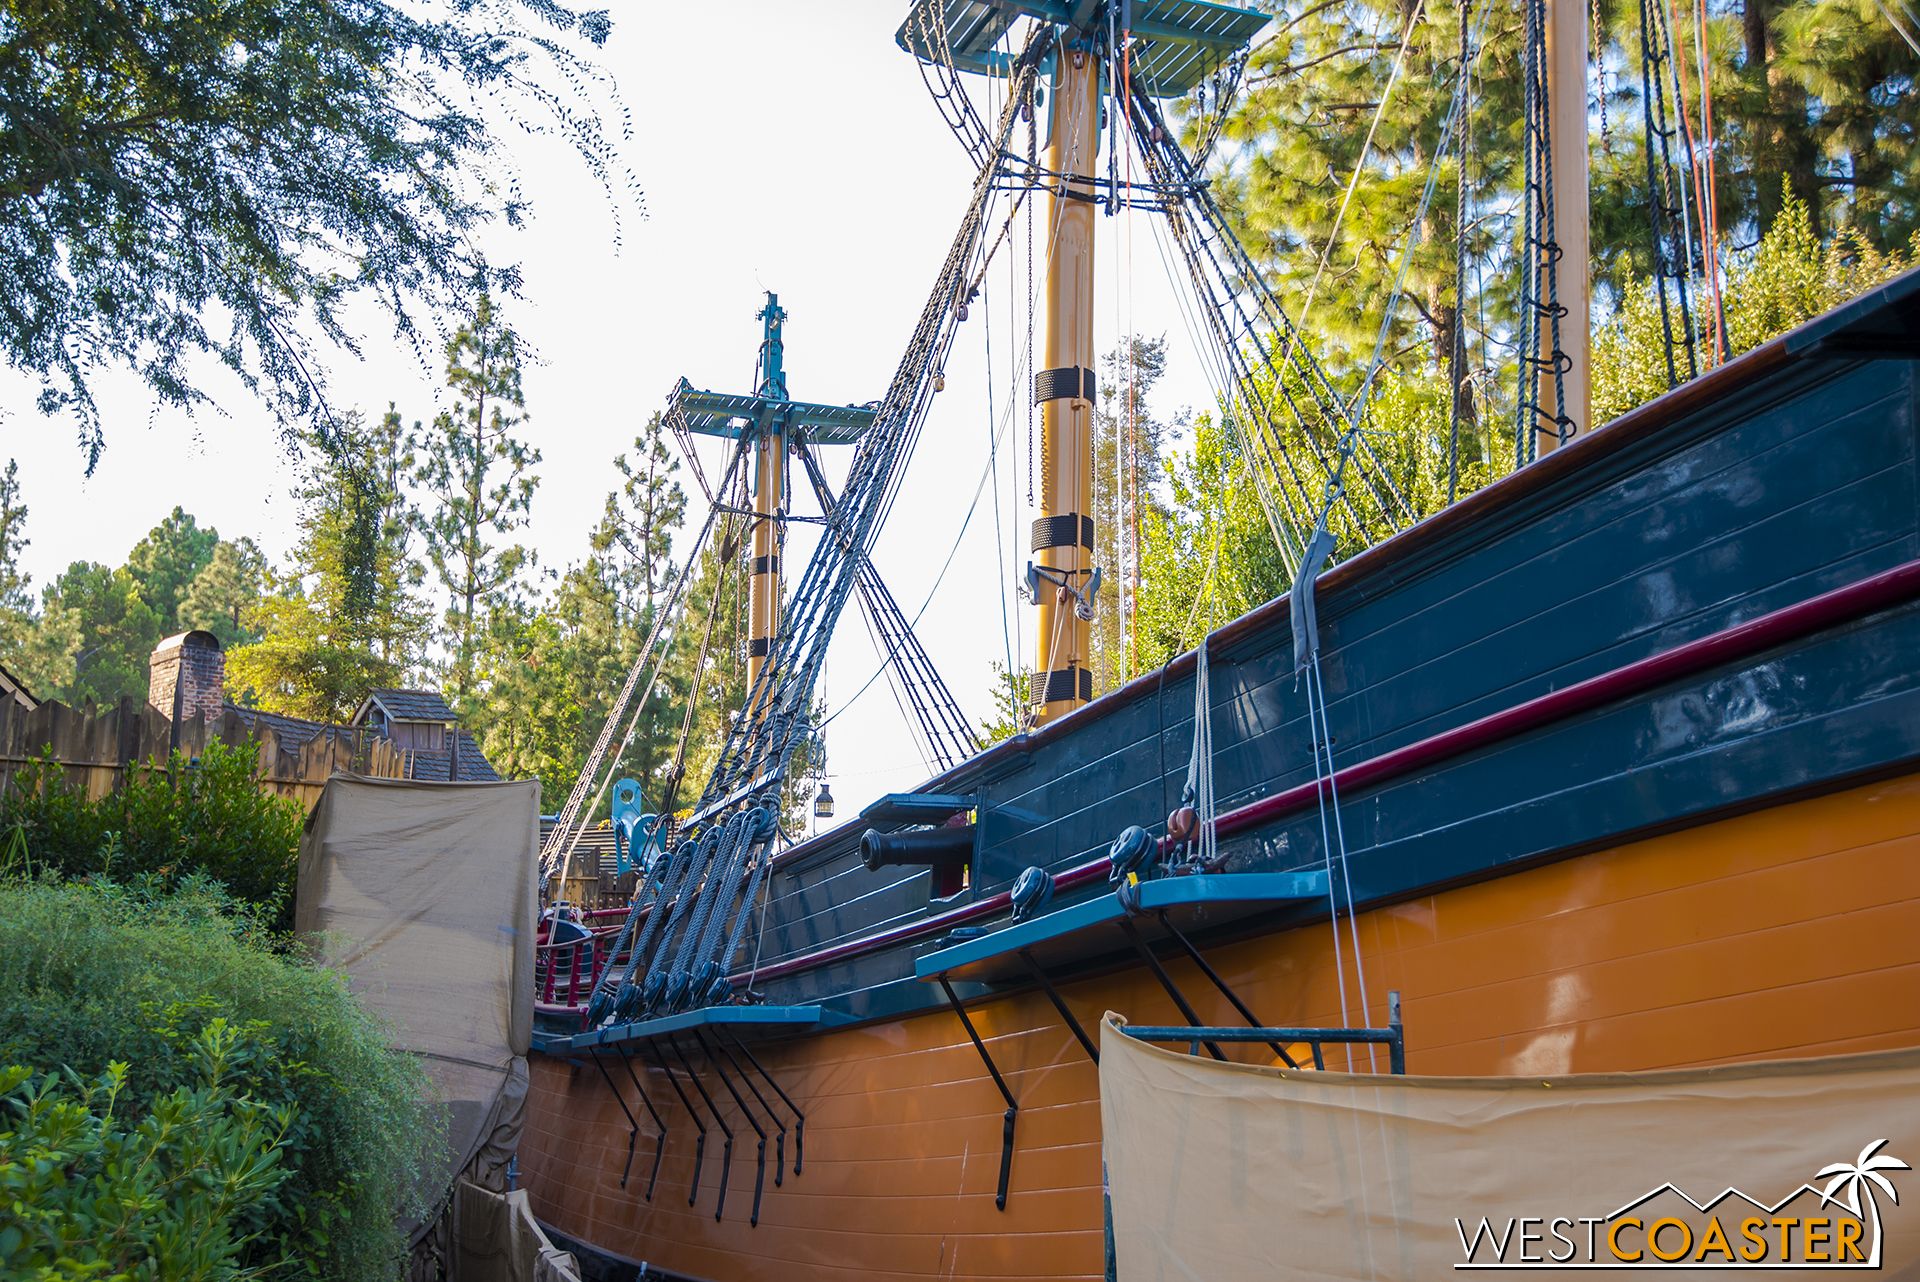 What'd they do? Why would they... WHAT DO YOU HAVE AGAINST MASTS, DISNEY? Show me on the doll where the masts hurt you.